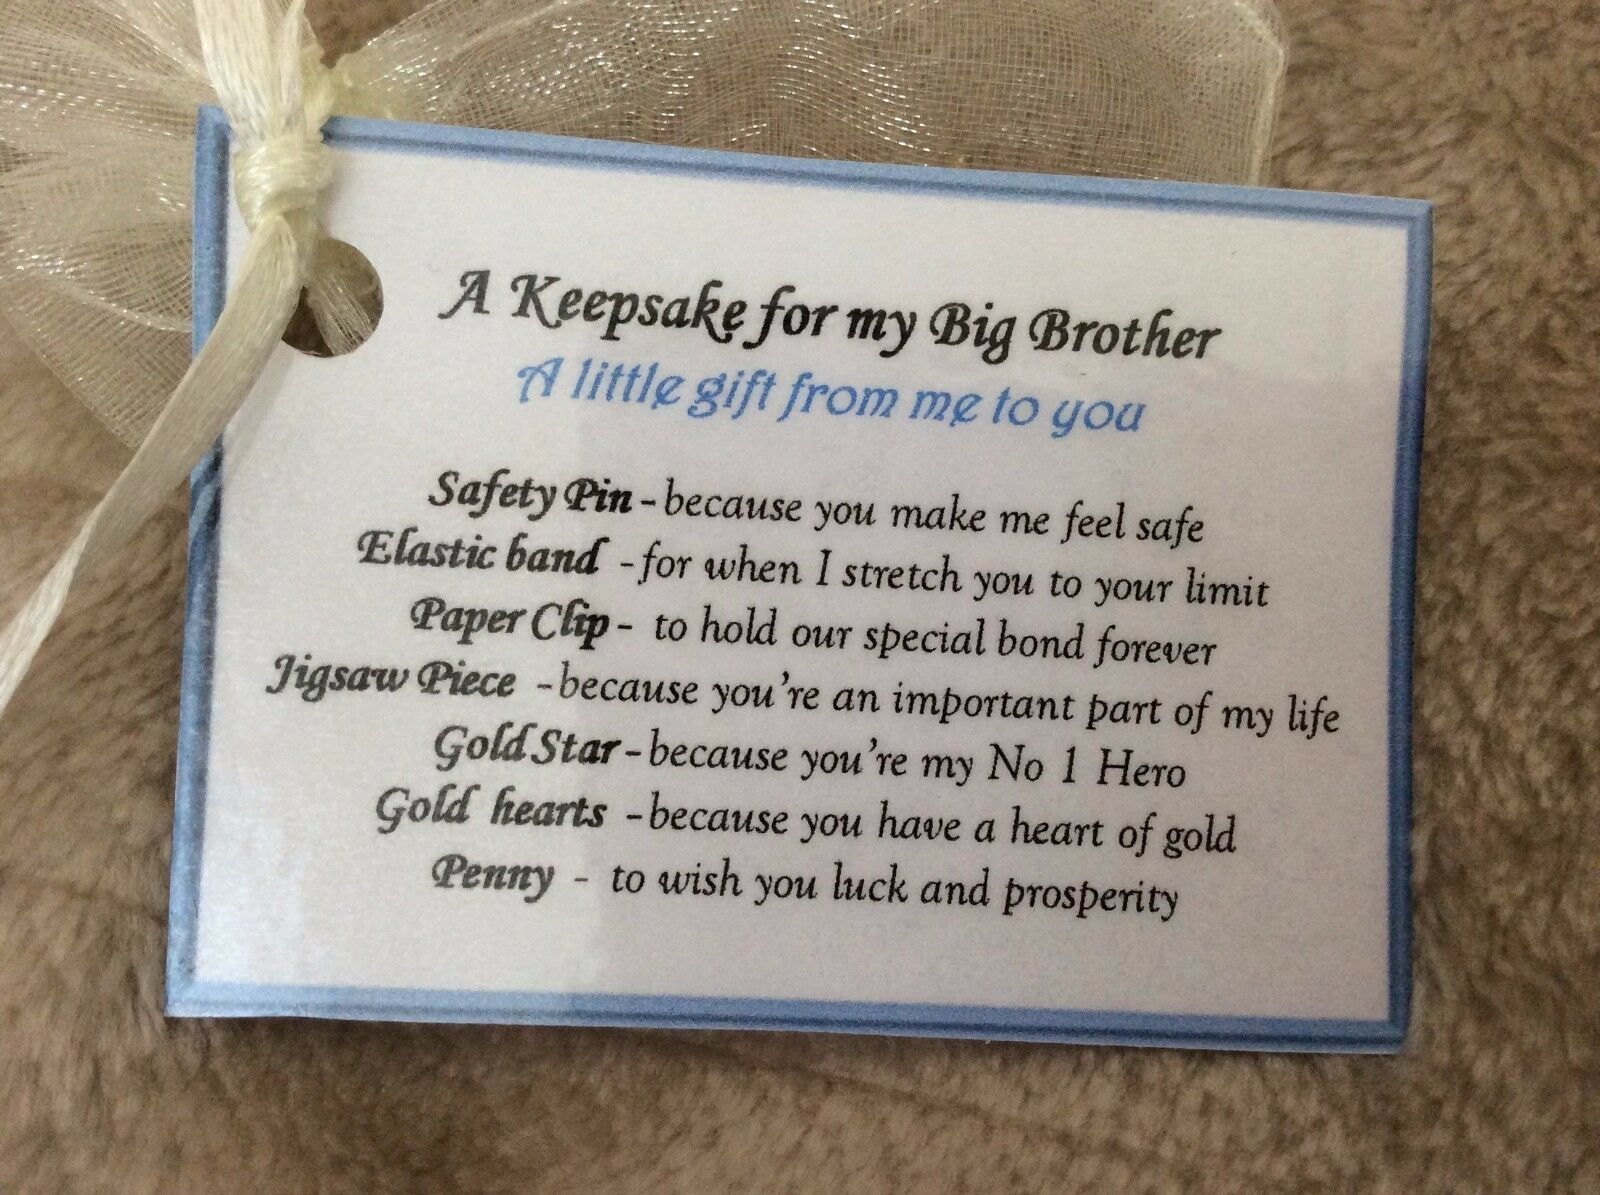 Details About Novelty Keepsake Birthday Gift Idea For My Brother Older Big Card